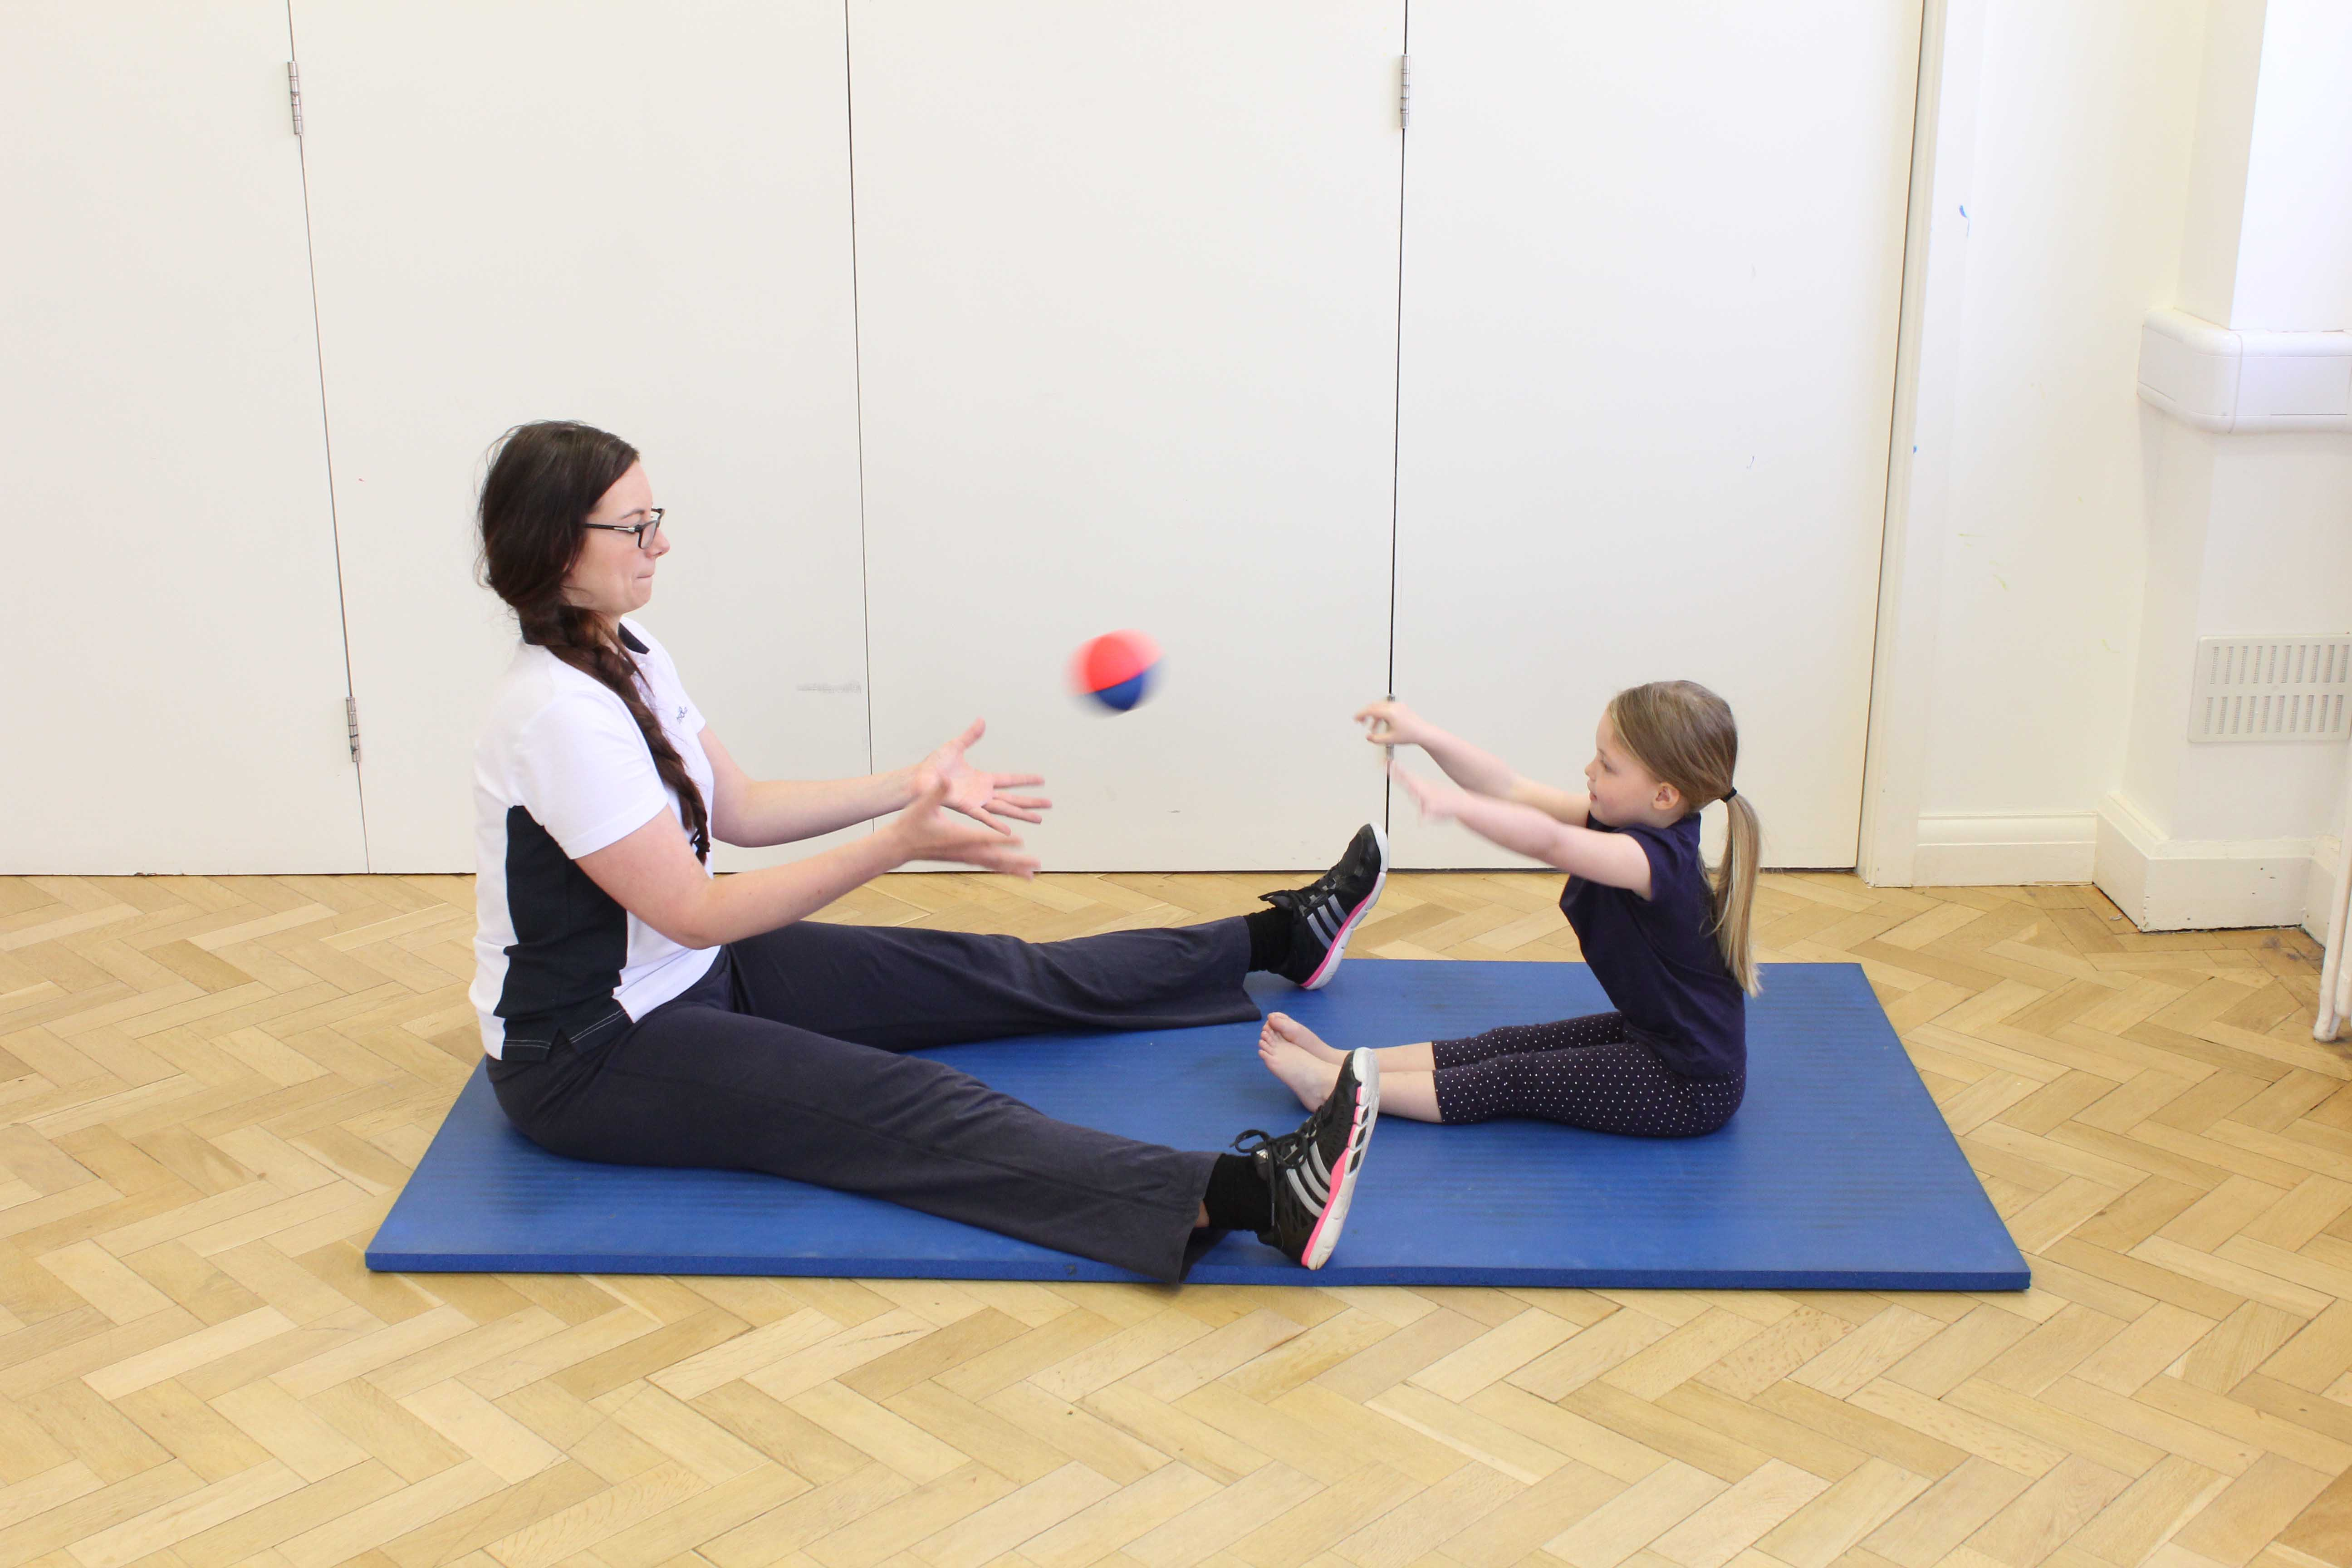 Maintaining upper limb mobility through structered play exercises